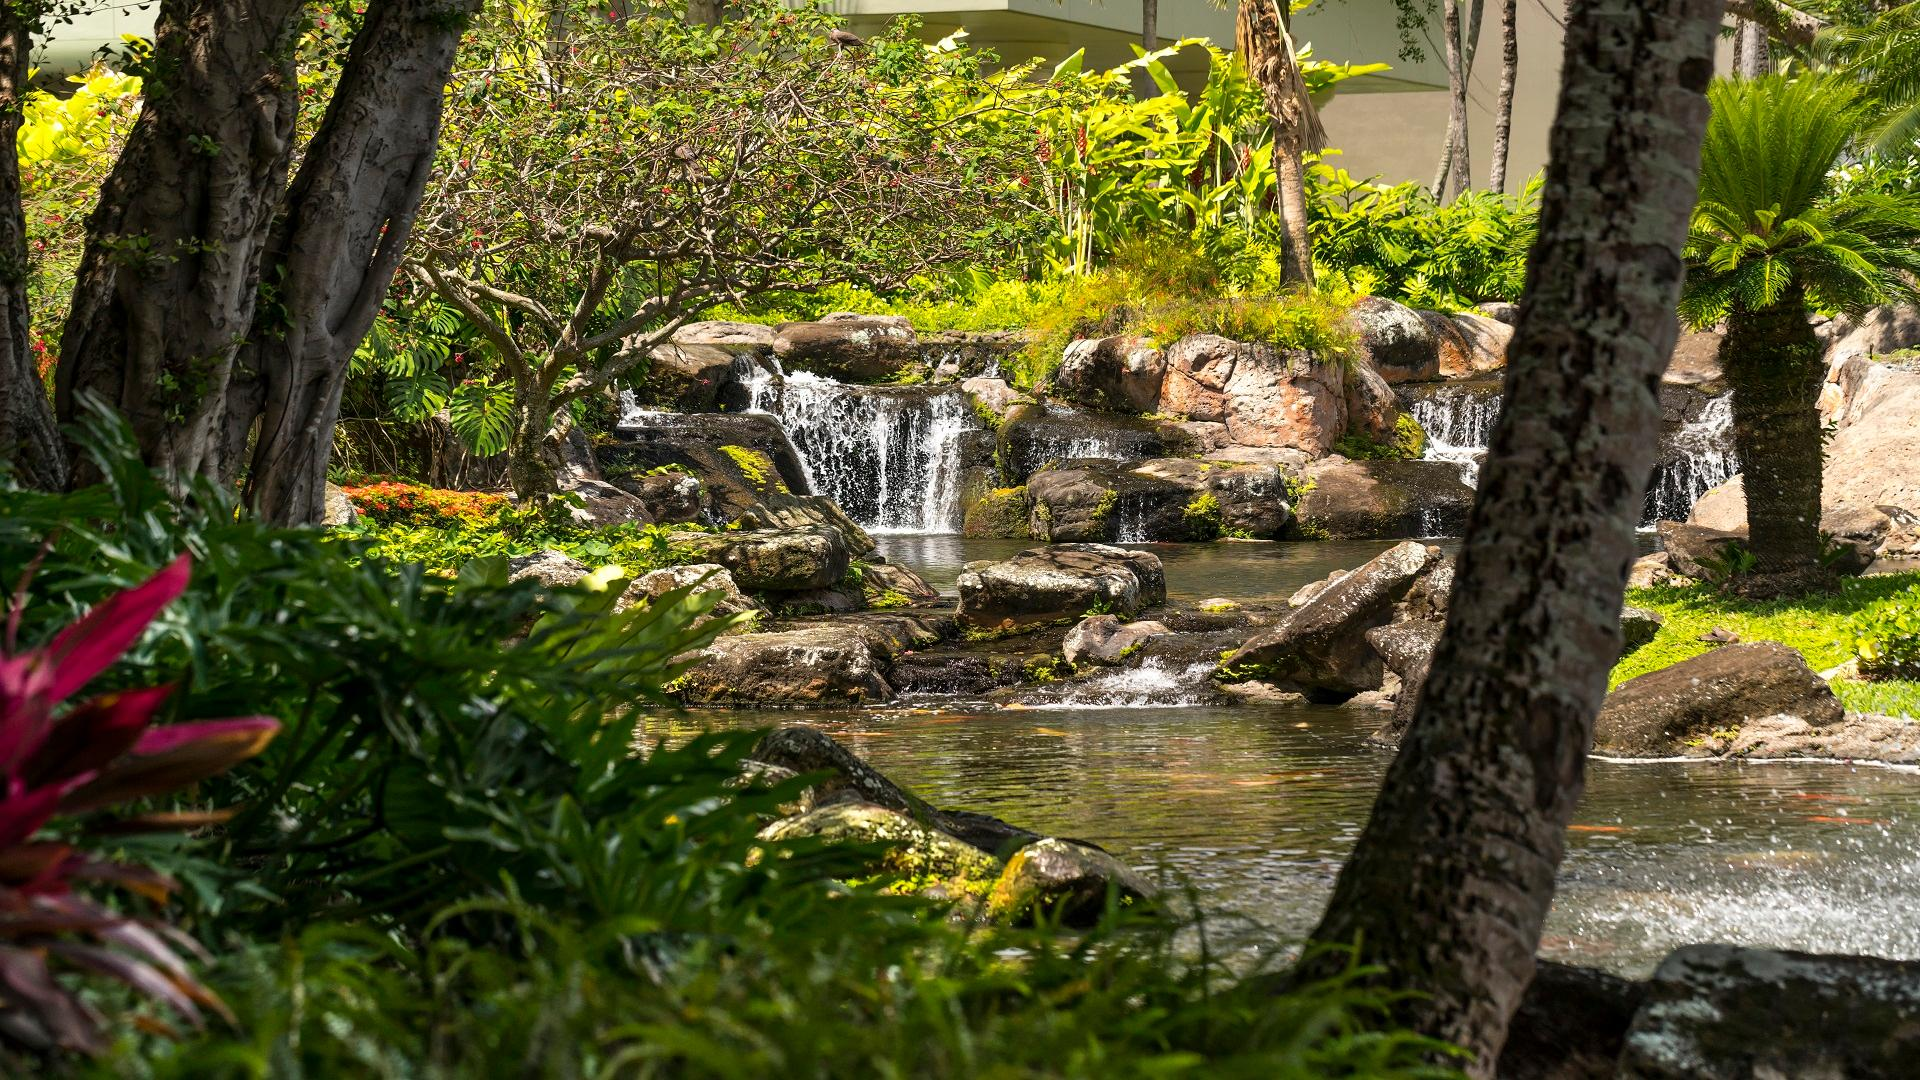 Gaze at the koi fish swimming in our resort's serene garden ponds, surrounded by a lush vegetation fed by a waterfall.